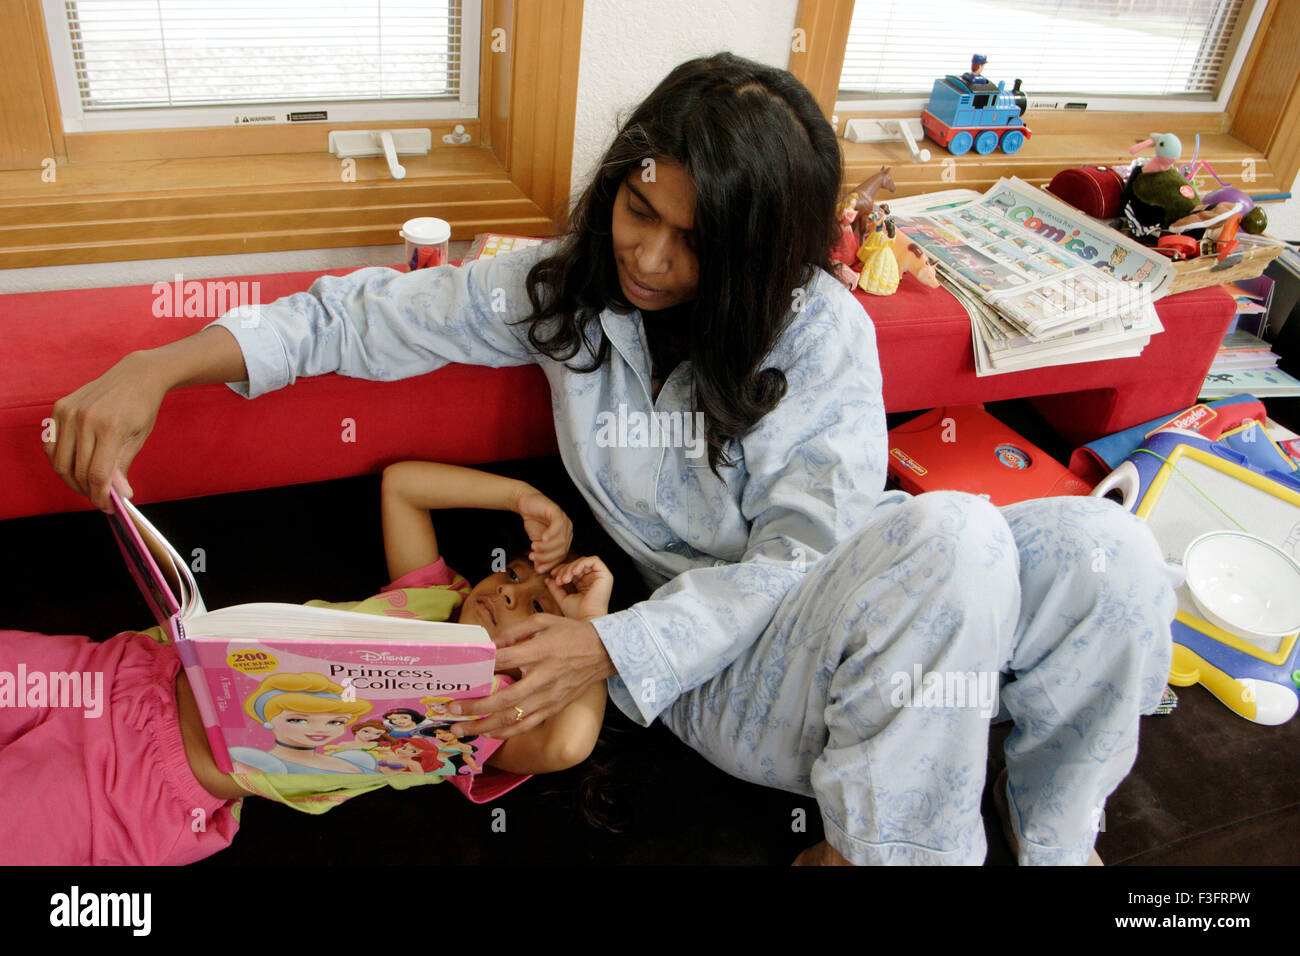 Mother reading story book and daughter listening - Stock Image